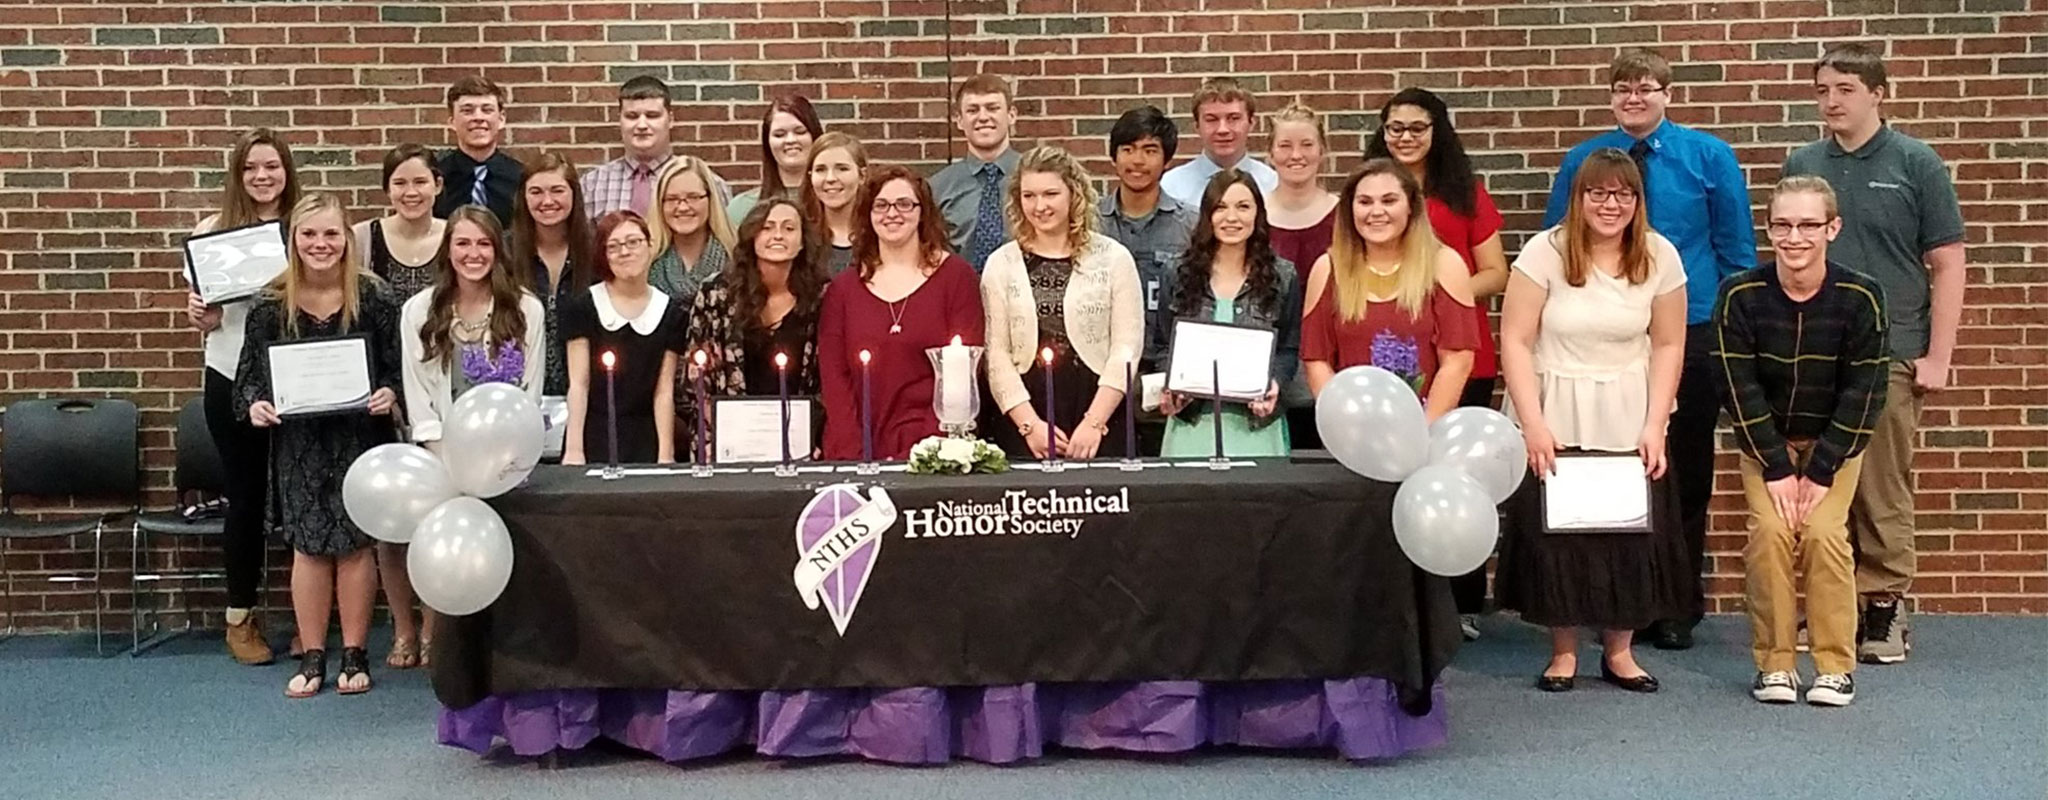 National Technical Honor Society Group of Students